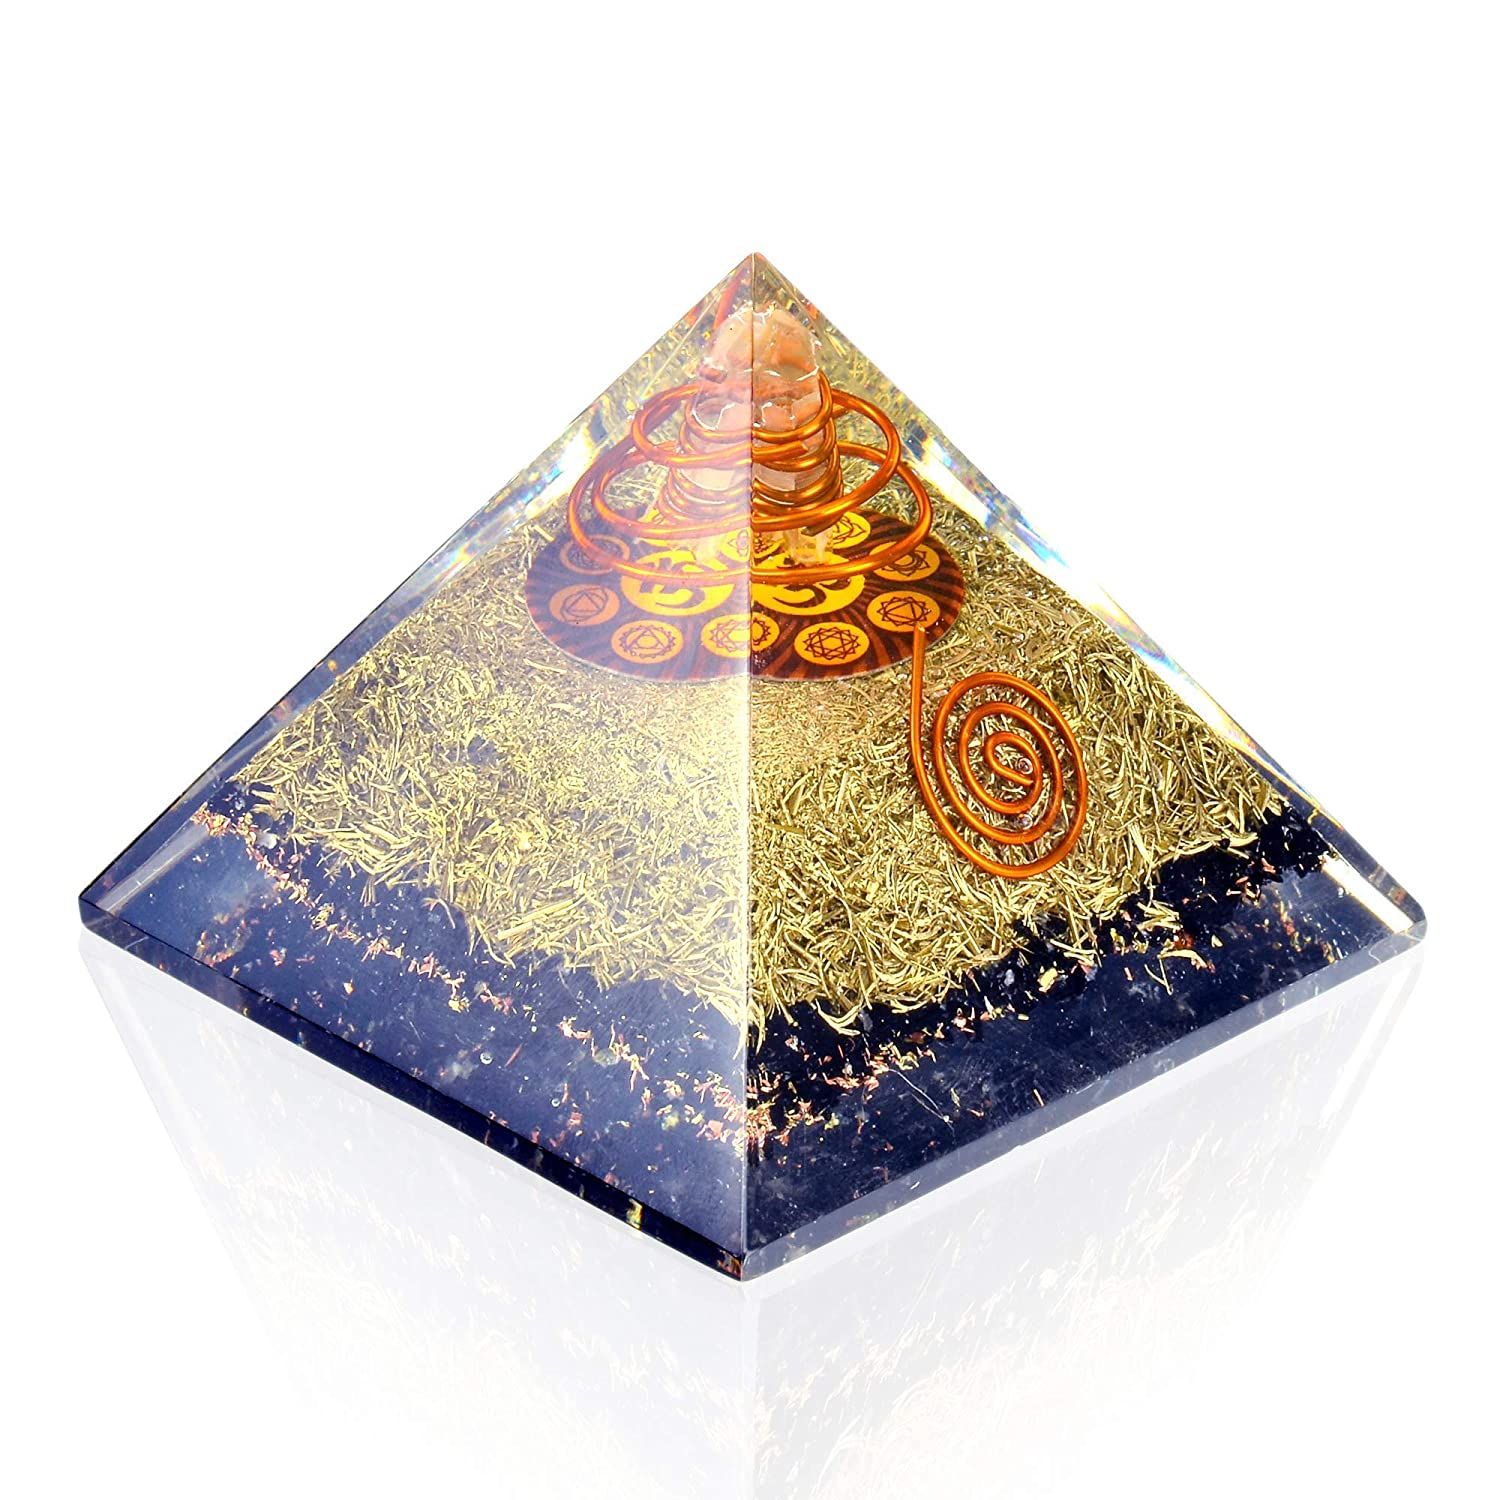 Orgone Pyramid Energy Generator - Chakra Om Symbol Orgonite Black  Tourmaline Crystal Pyramid with Brass Metal for EMF Protection - Chakra